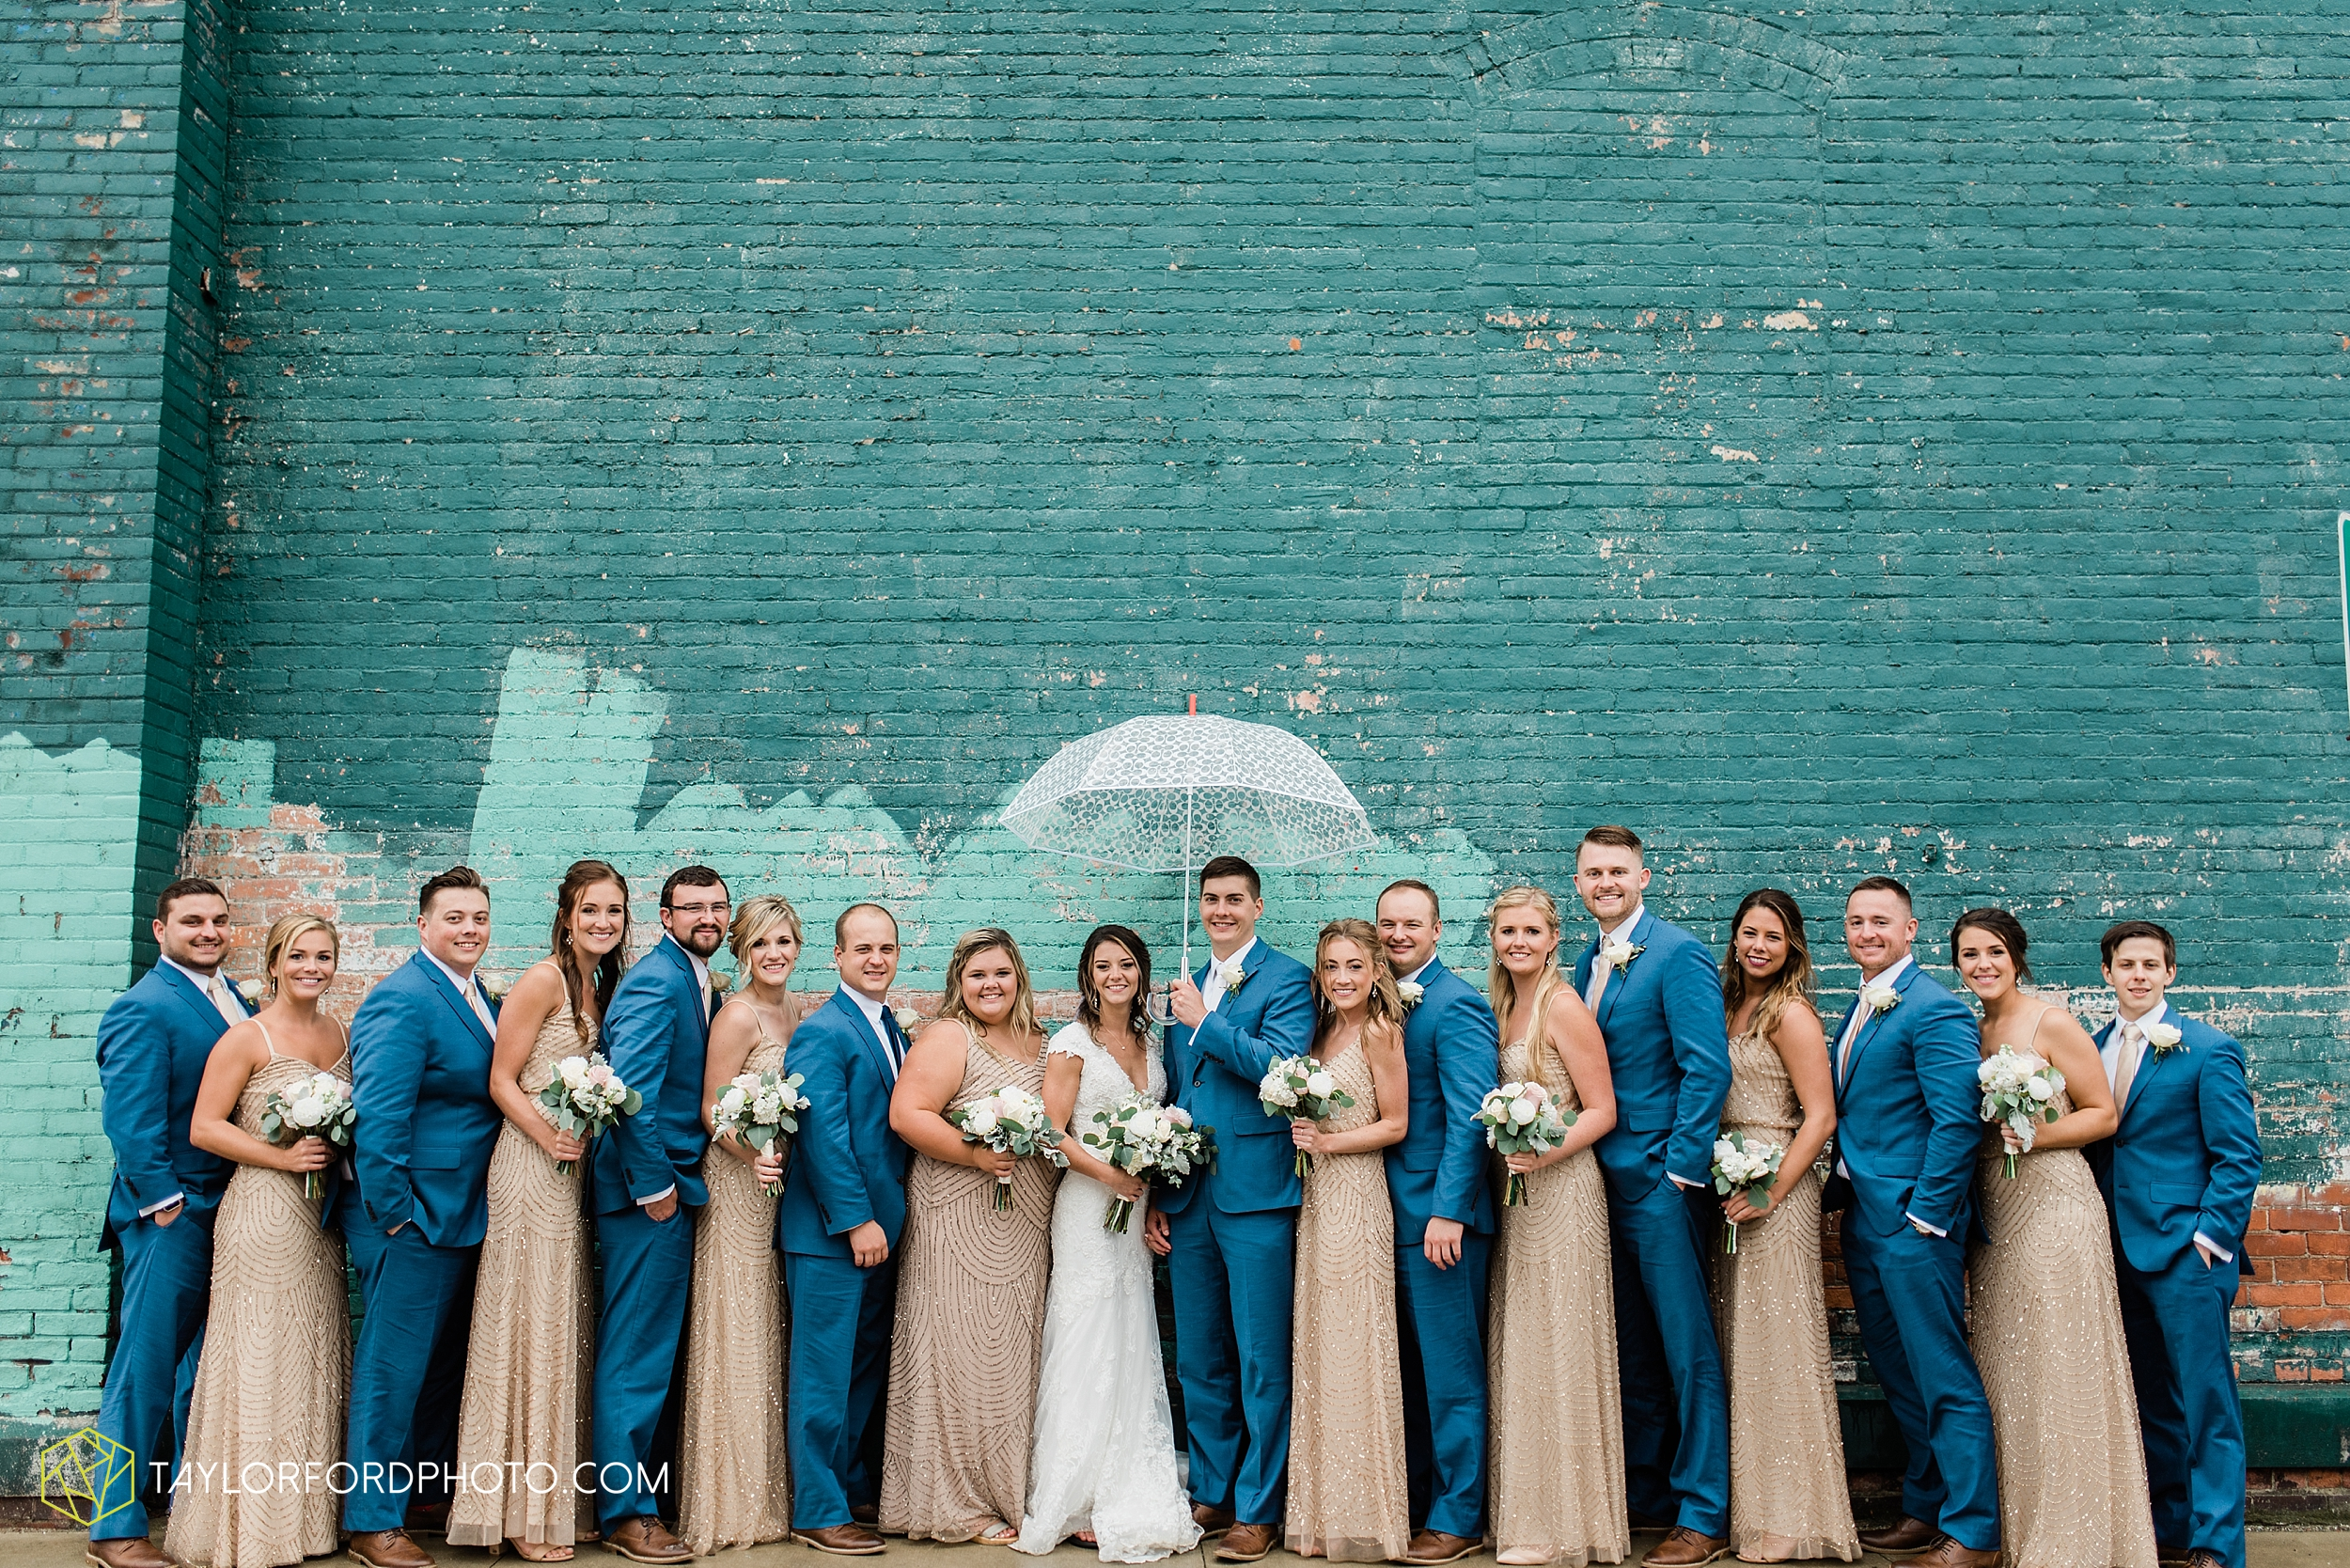 kacee-haden-sholl-second-story-saint-marys-knights-of-columbus-defiance-ohio-wedding-photographer-taylor-ford-photography_0183.jpg